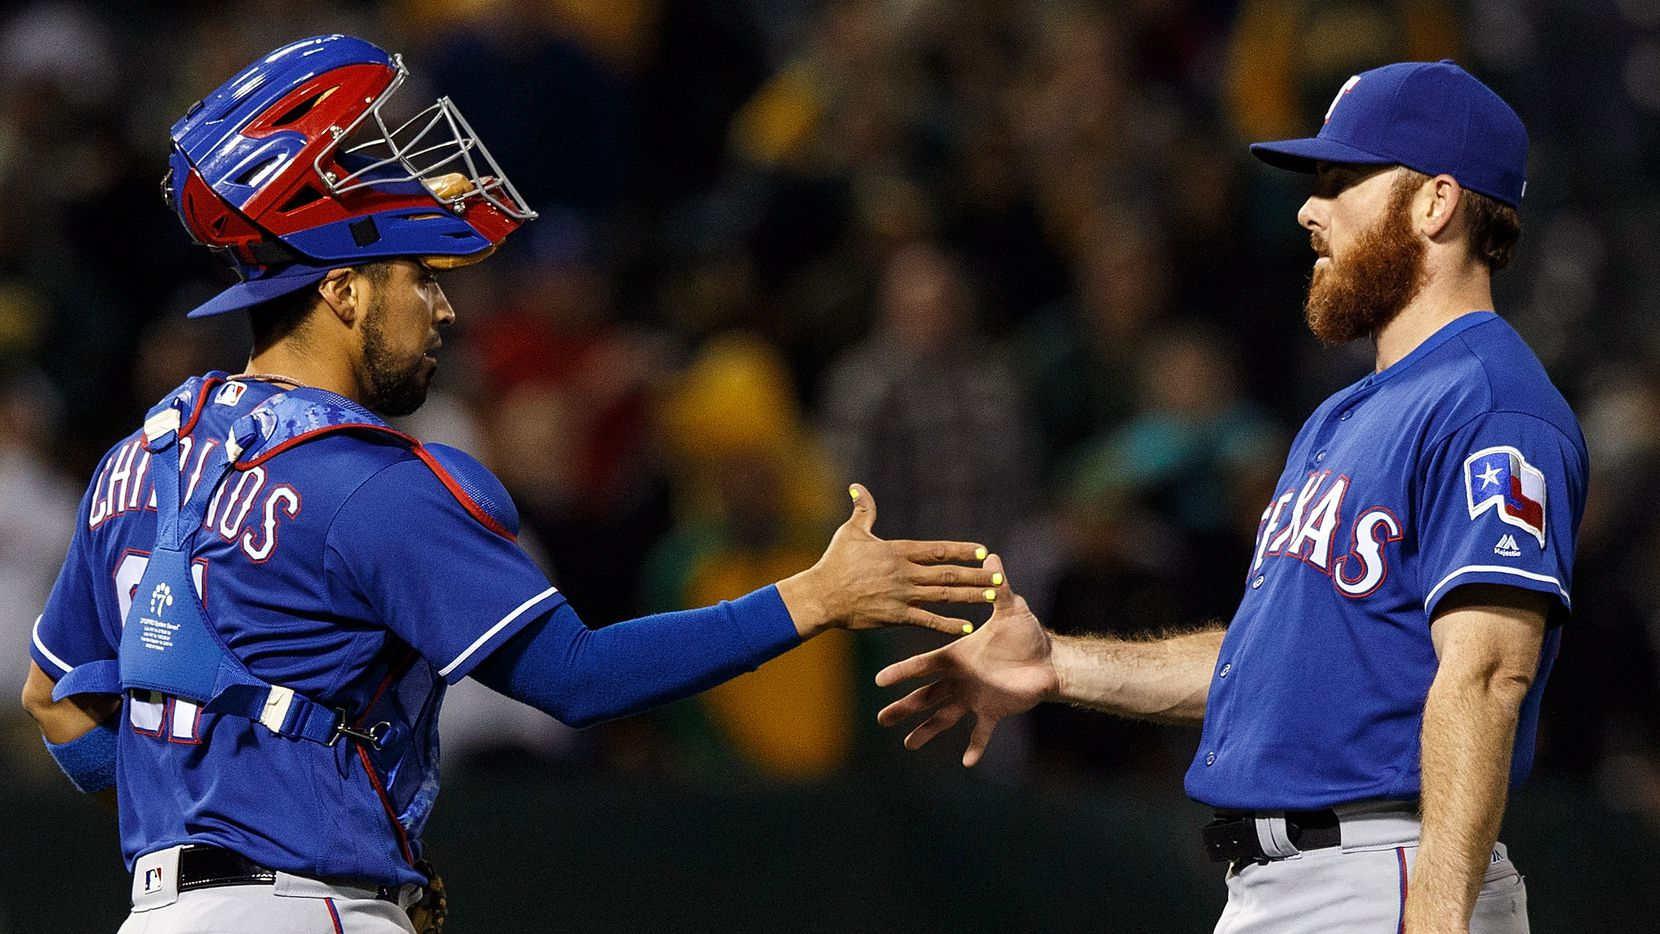 OAKLAND, CA - JUNE 14:  Robinson Chirinos #61 of the Texas Rangers celebrates with Sam Dyson #47 after the game against the Oakland Athletics at the Oakland Coliseum on June 14, 2016 in Oakland, California. The Texas Rangers defeated the Oakland Athletics 10-6. (Photo by Jason O. Watson/Getty Images)